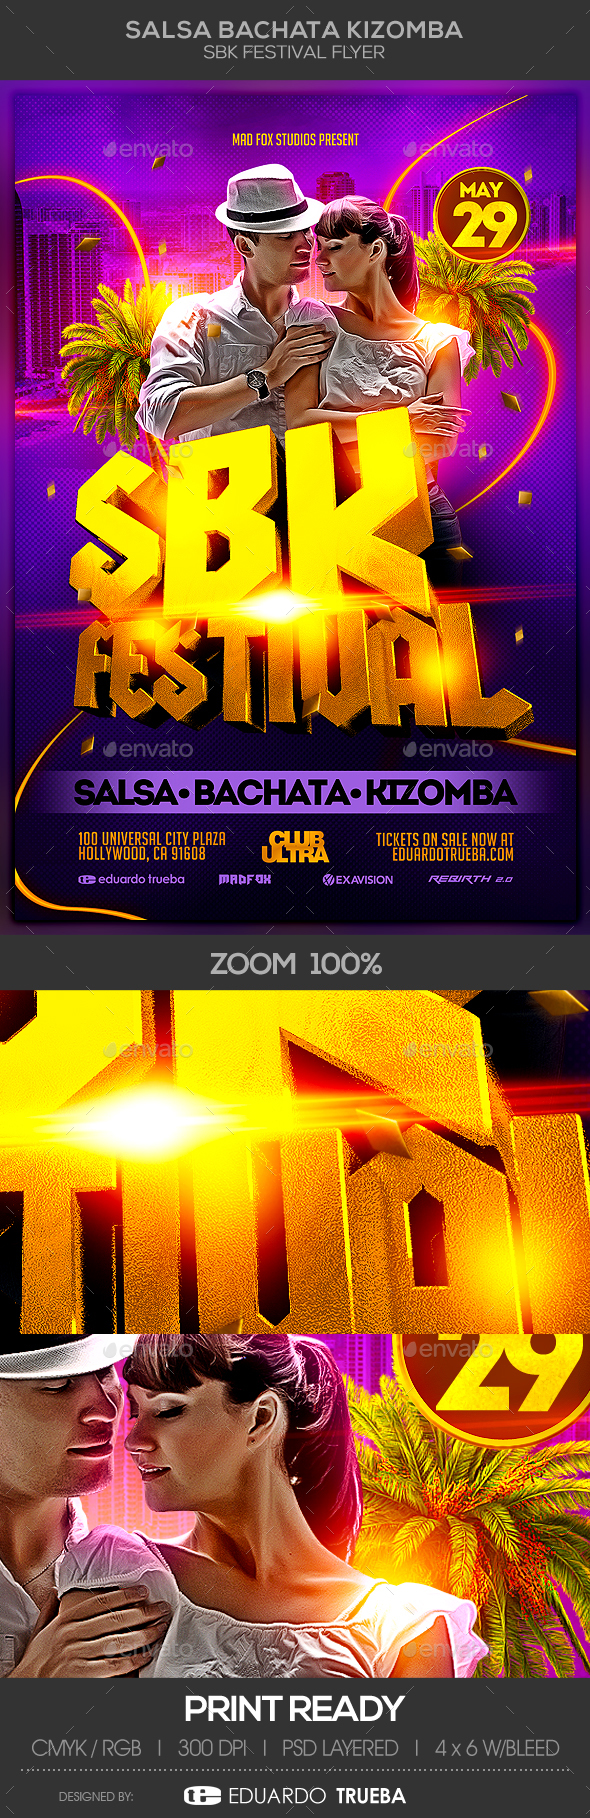 Salsa Bachata Kizomba SBK Festival Party Flyer - Clubs & Parties Events